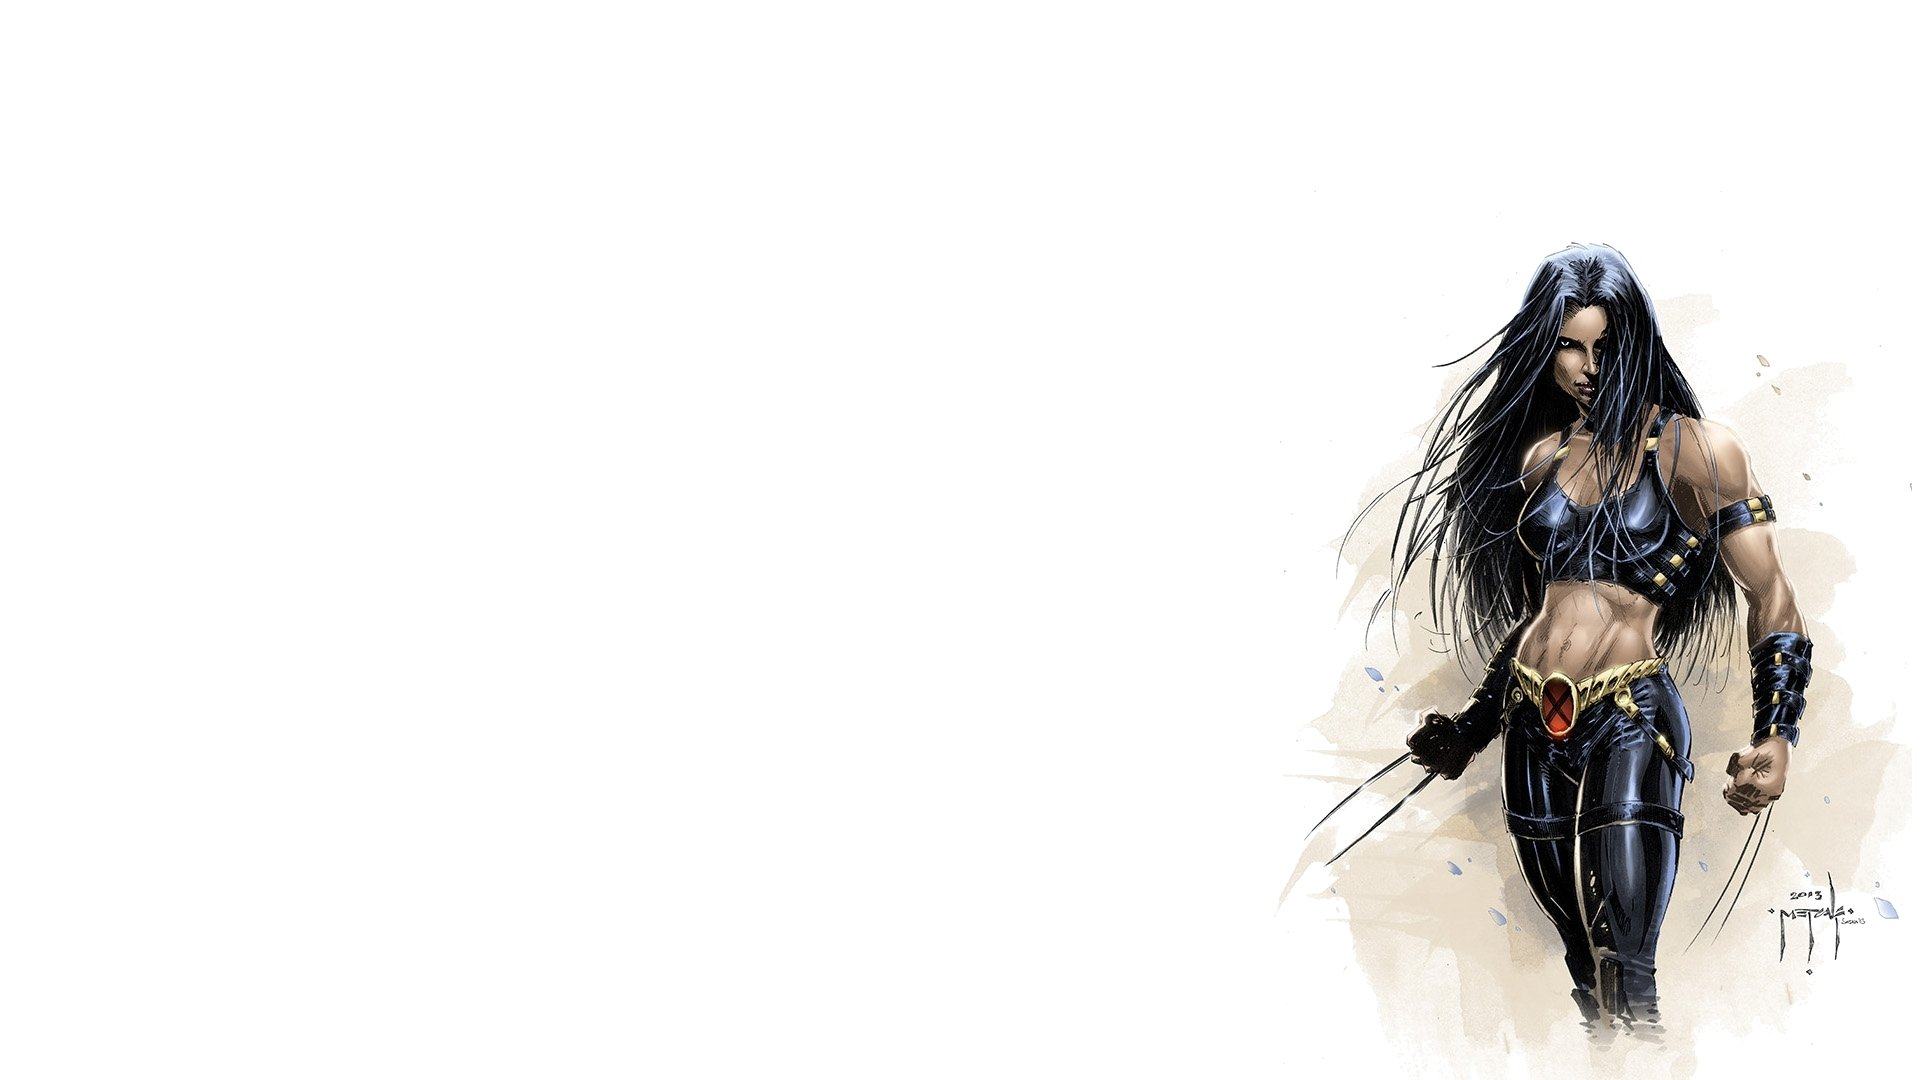 X23 images x23 HD wallpaper and background photos 16169964